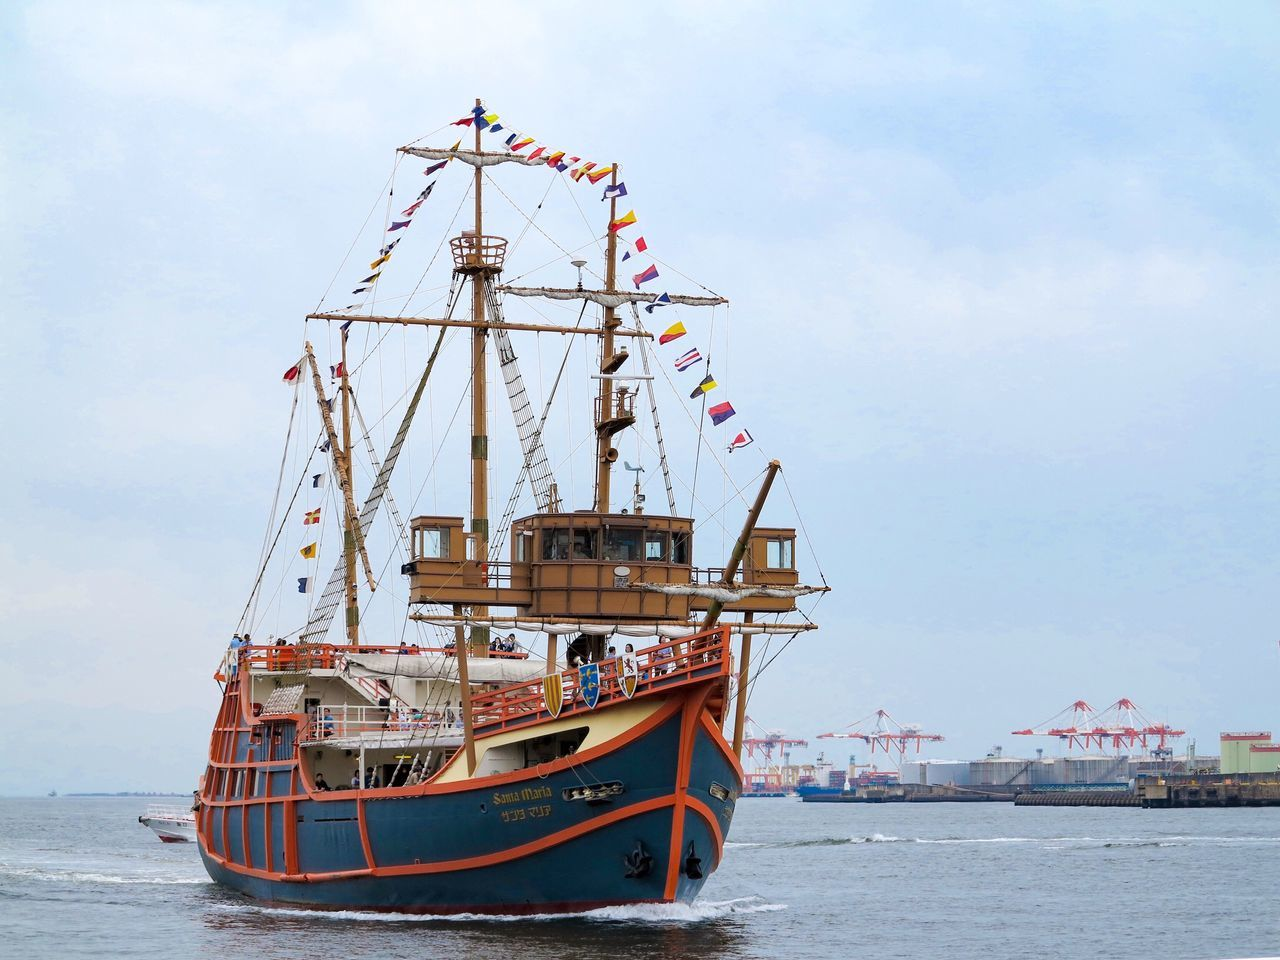 nautical vessel, transportation, mode of transport, sky, day, sea, no people, outdoors, cloud - sky, mast, moored, water, harbor, nature, tall ship, sailing ship